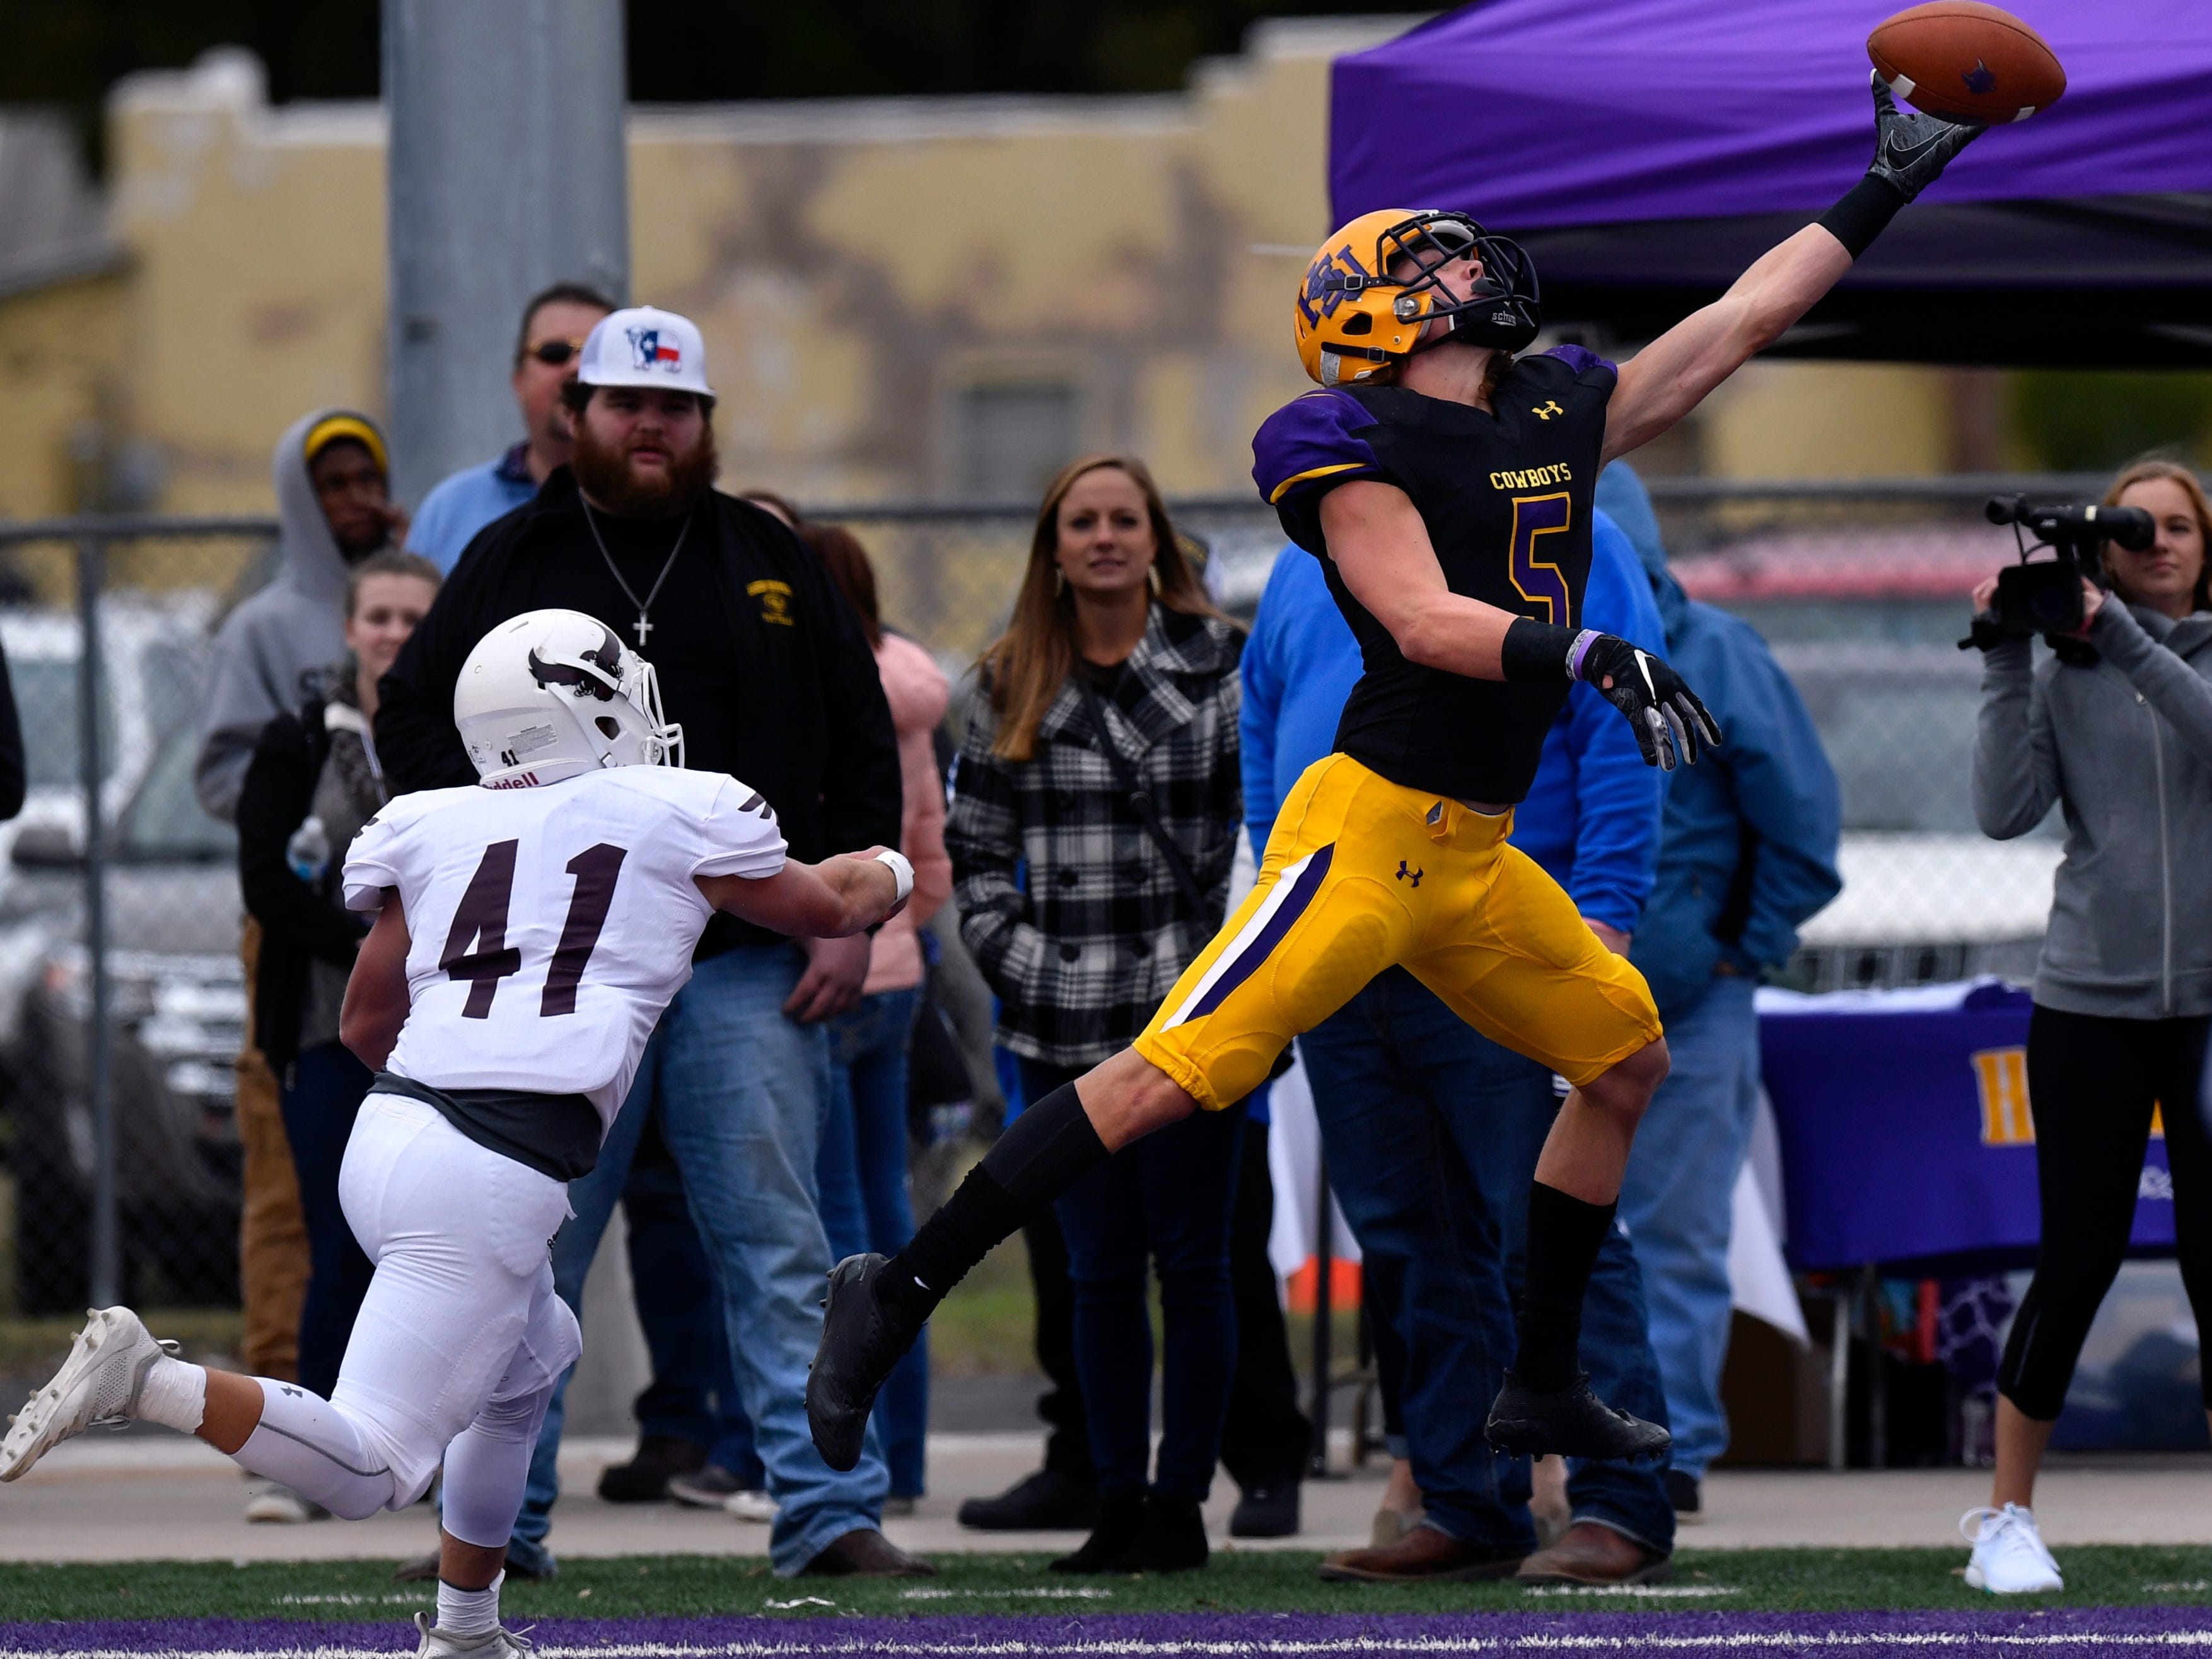 Hardin-Simmons wide receiver Reese Childress just misses catching a pass in the end zone Saturday Nov. 10, 2018 as McMurry's Bryson Barrett covers him. Final score was 83-6, HSU.